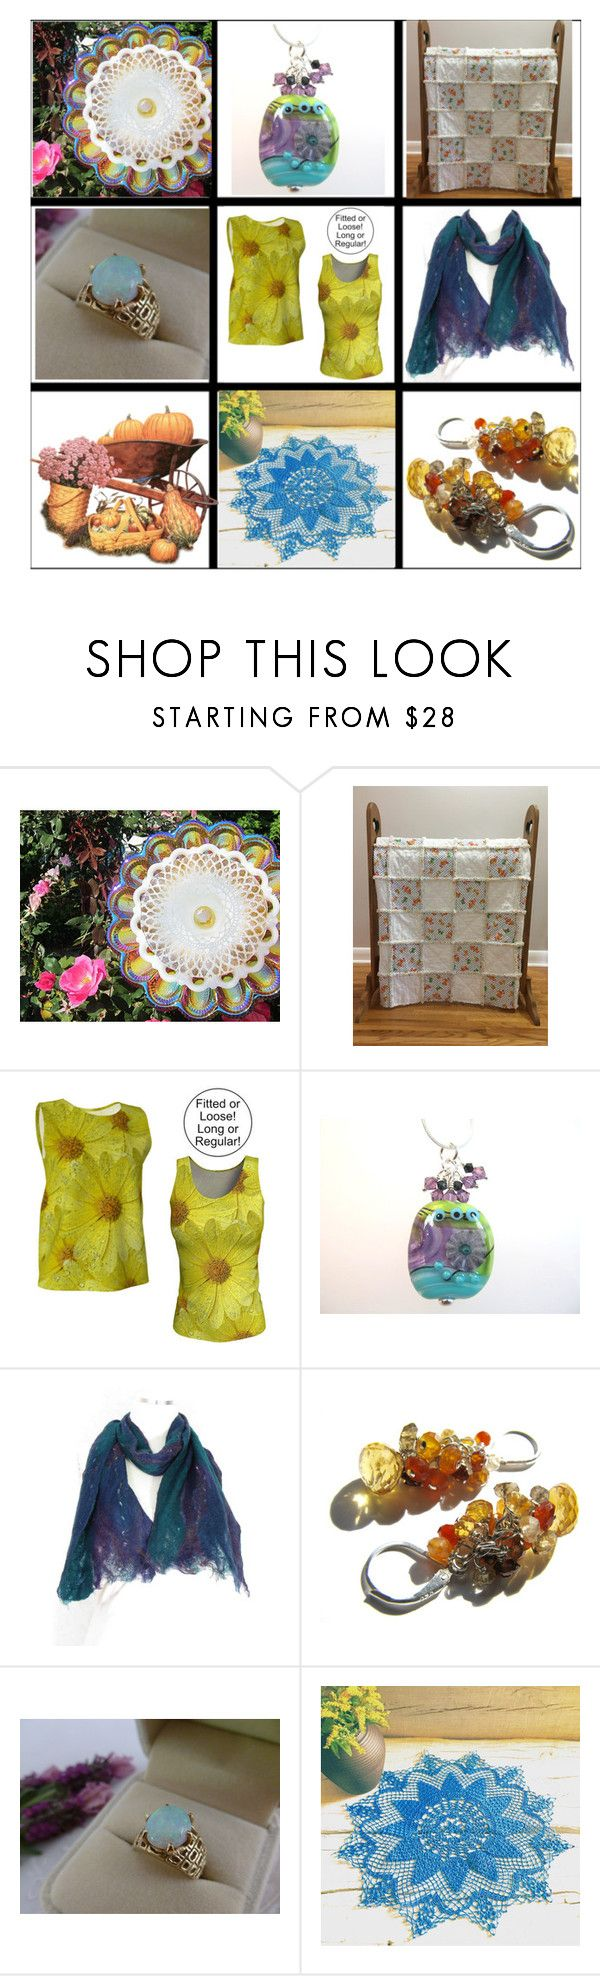 Handcrafted Artisan Gifts by belladonnasjoy on Polyvore featuring modern and vintage